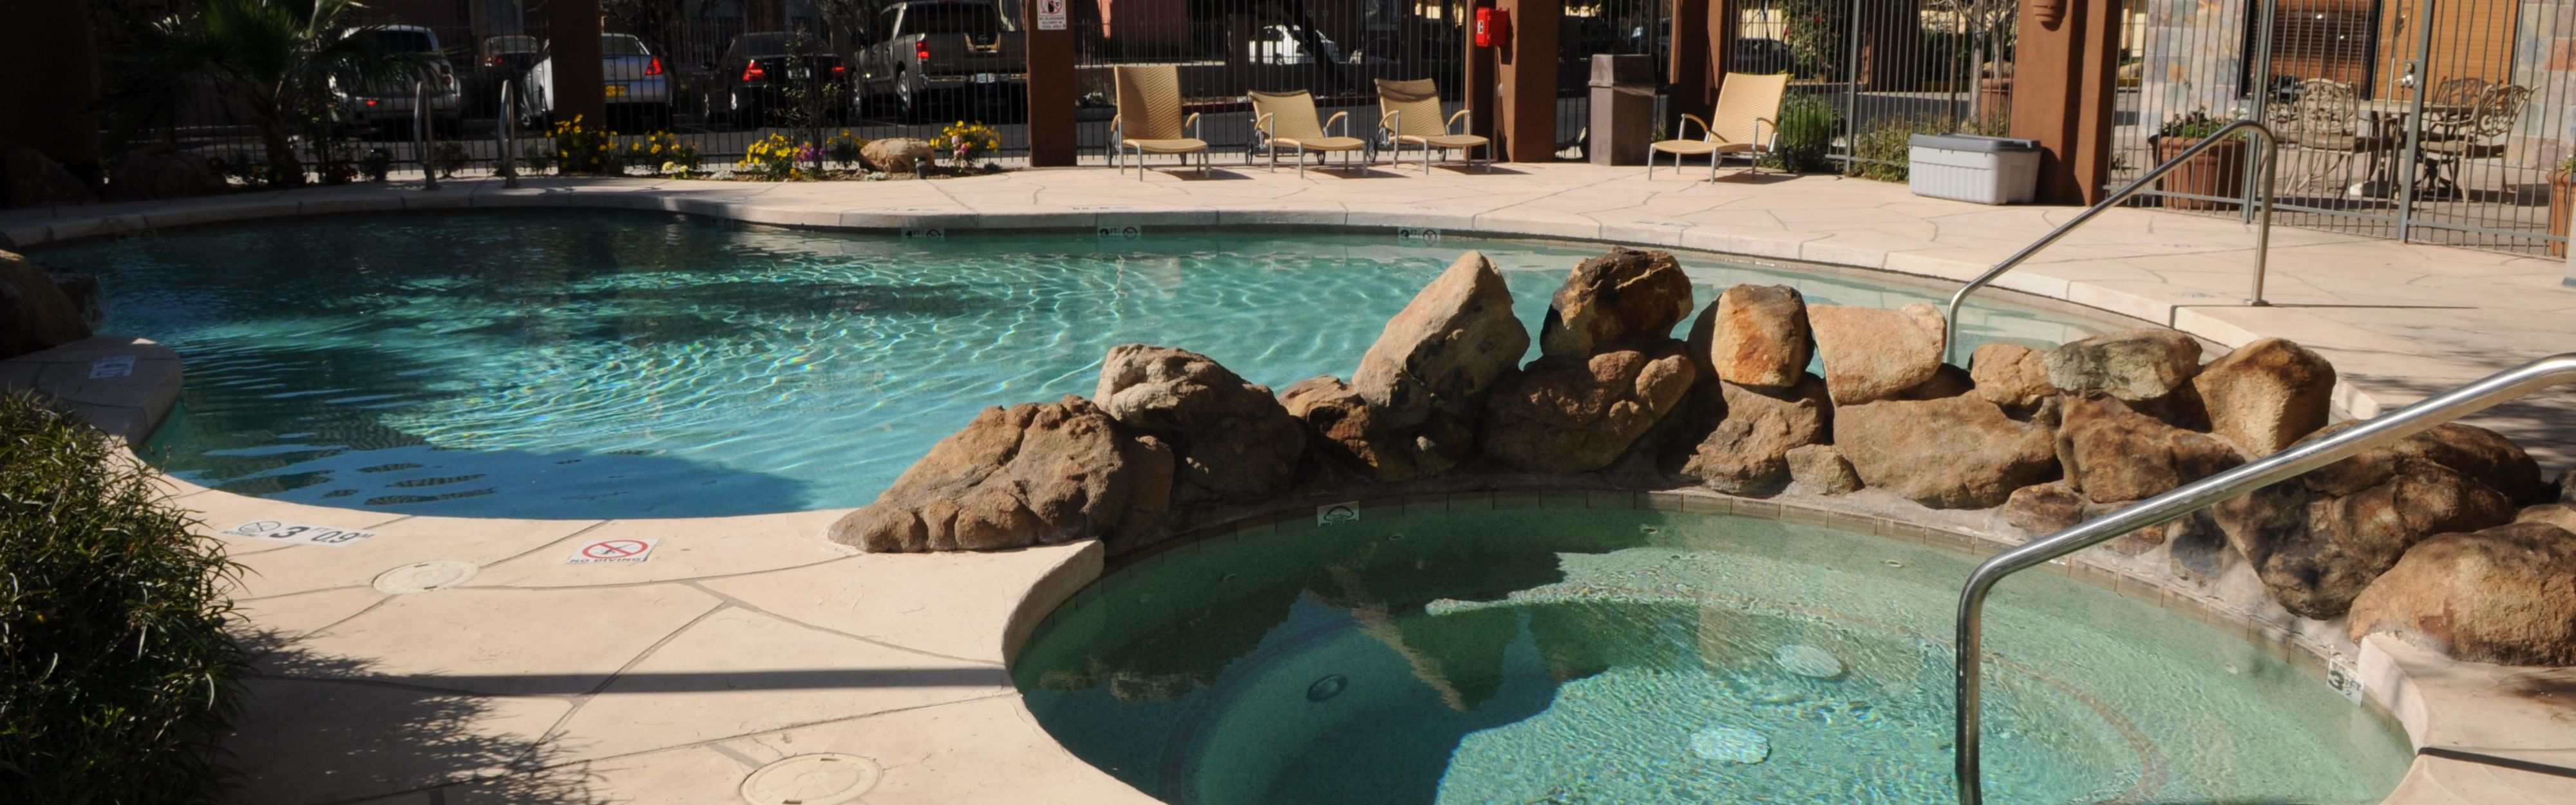 Holiday Inn Express & Suites Phoenix/Chandler (Ahwatukee) image 2